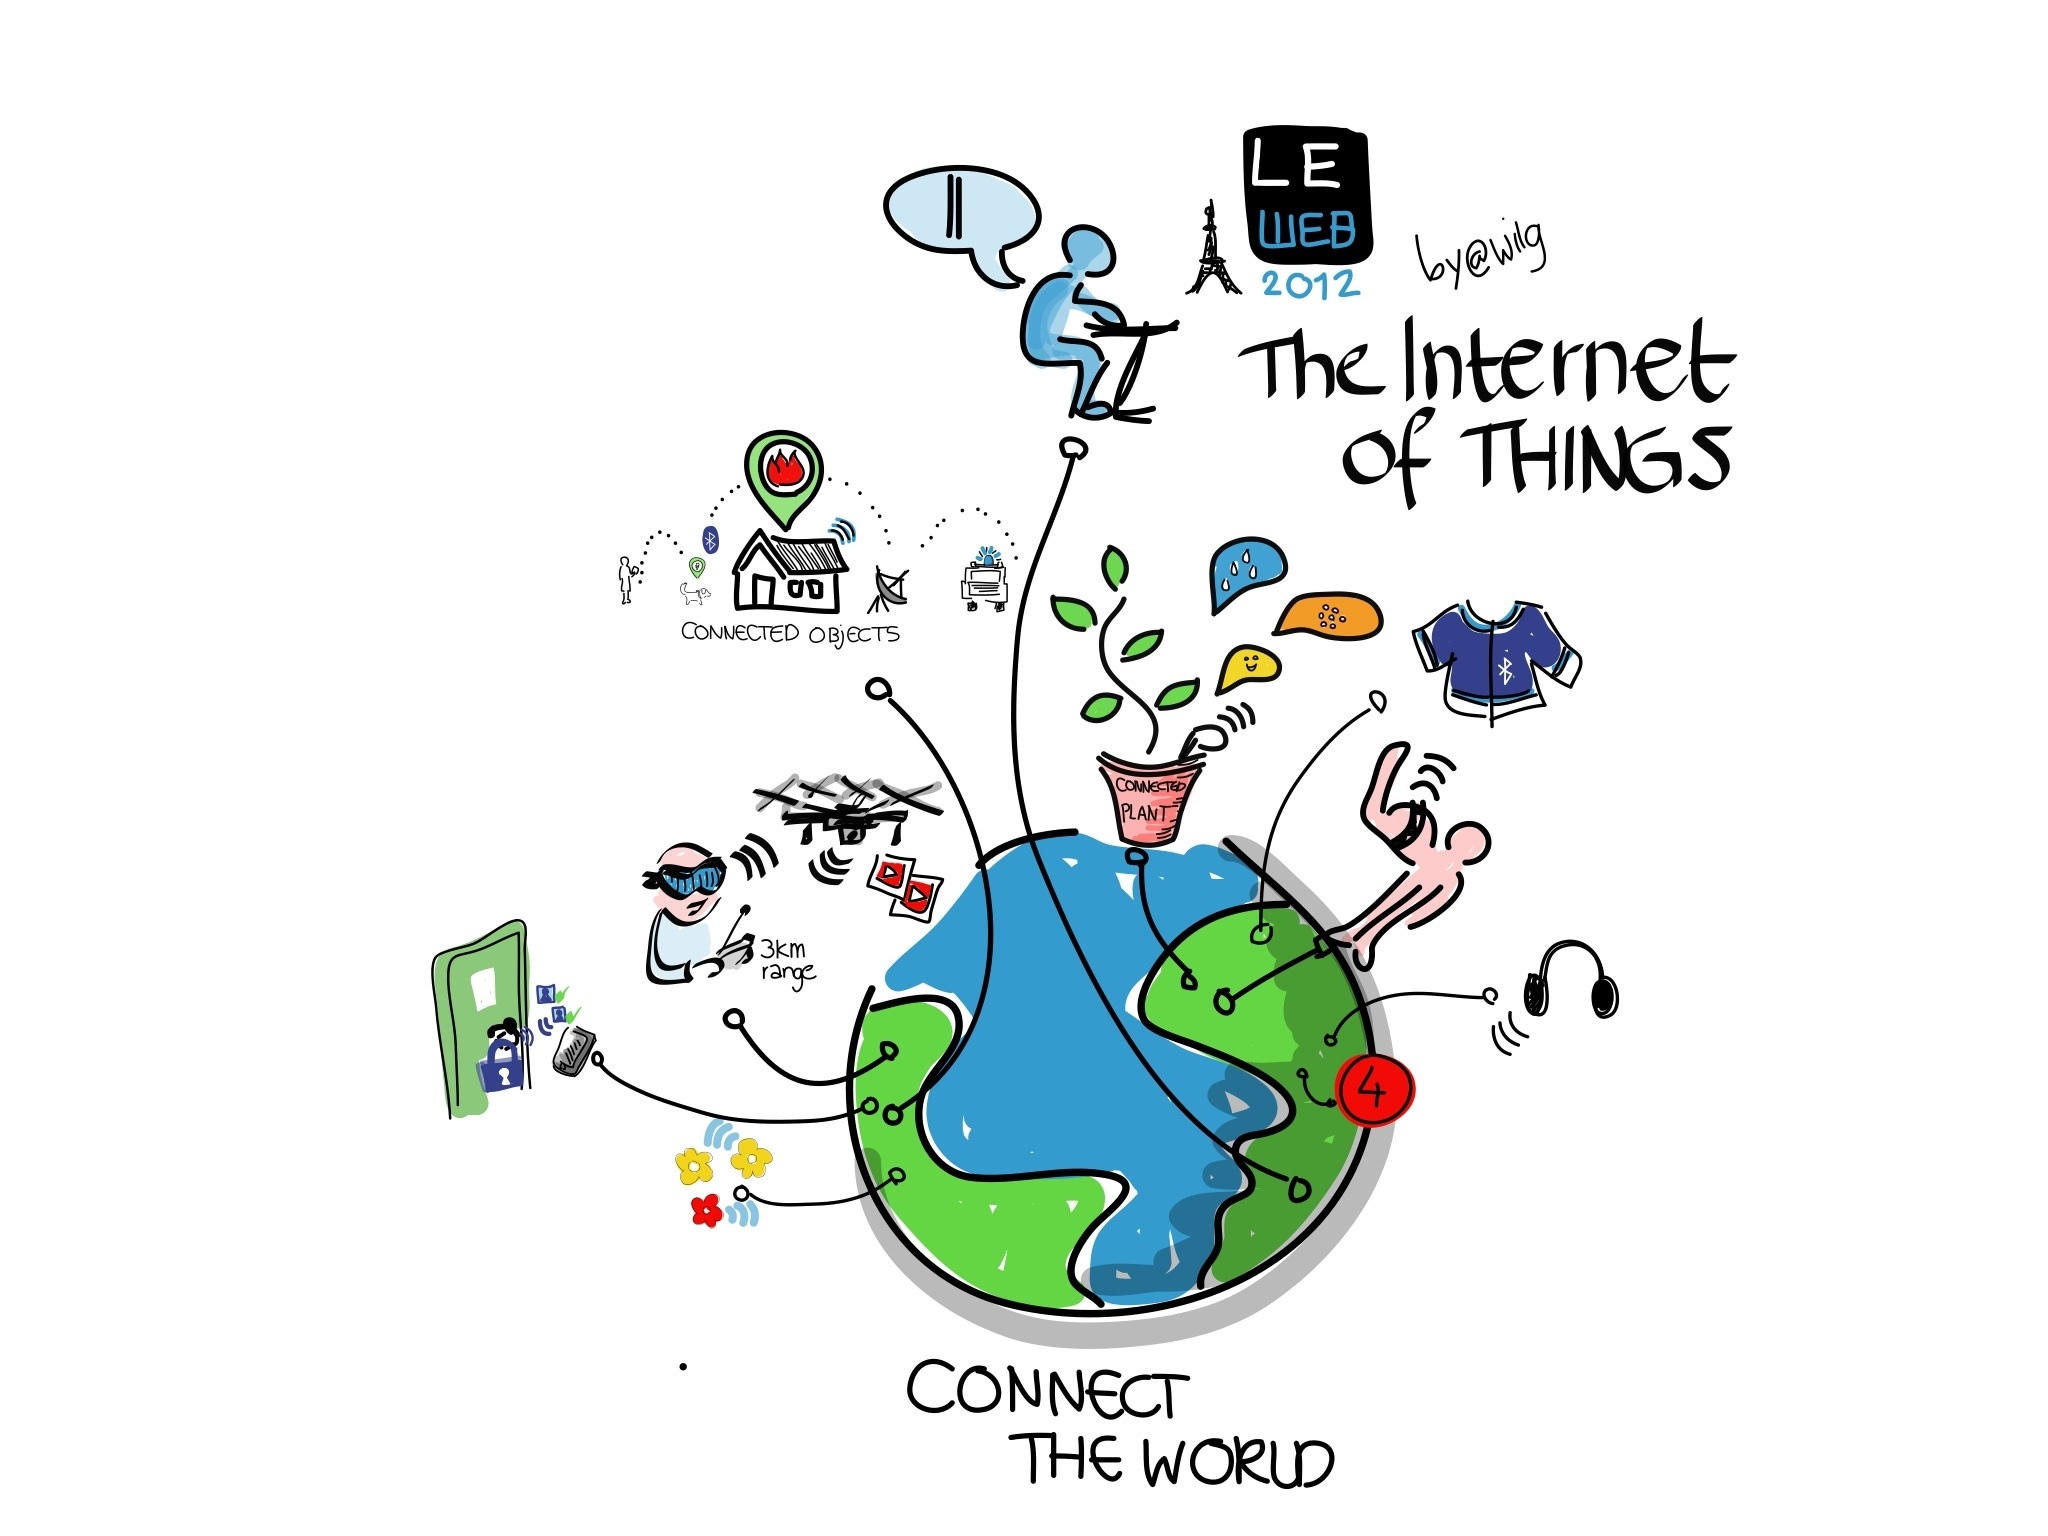 Internet_of_things_signed_by_the_author